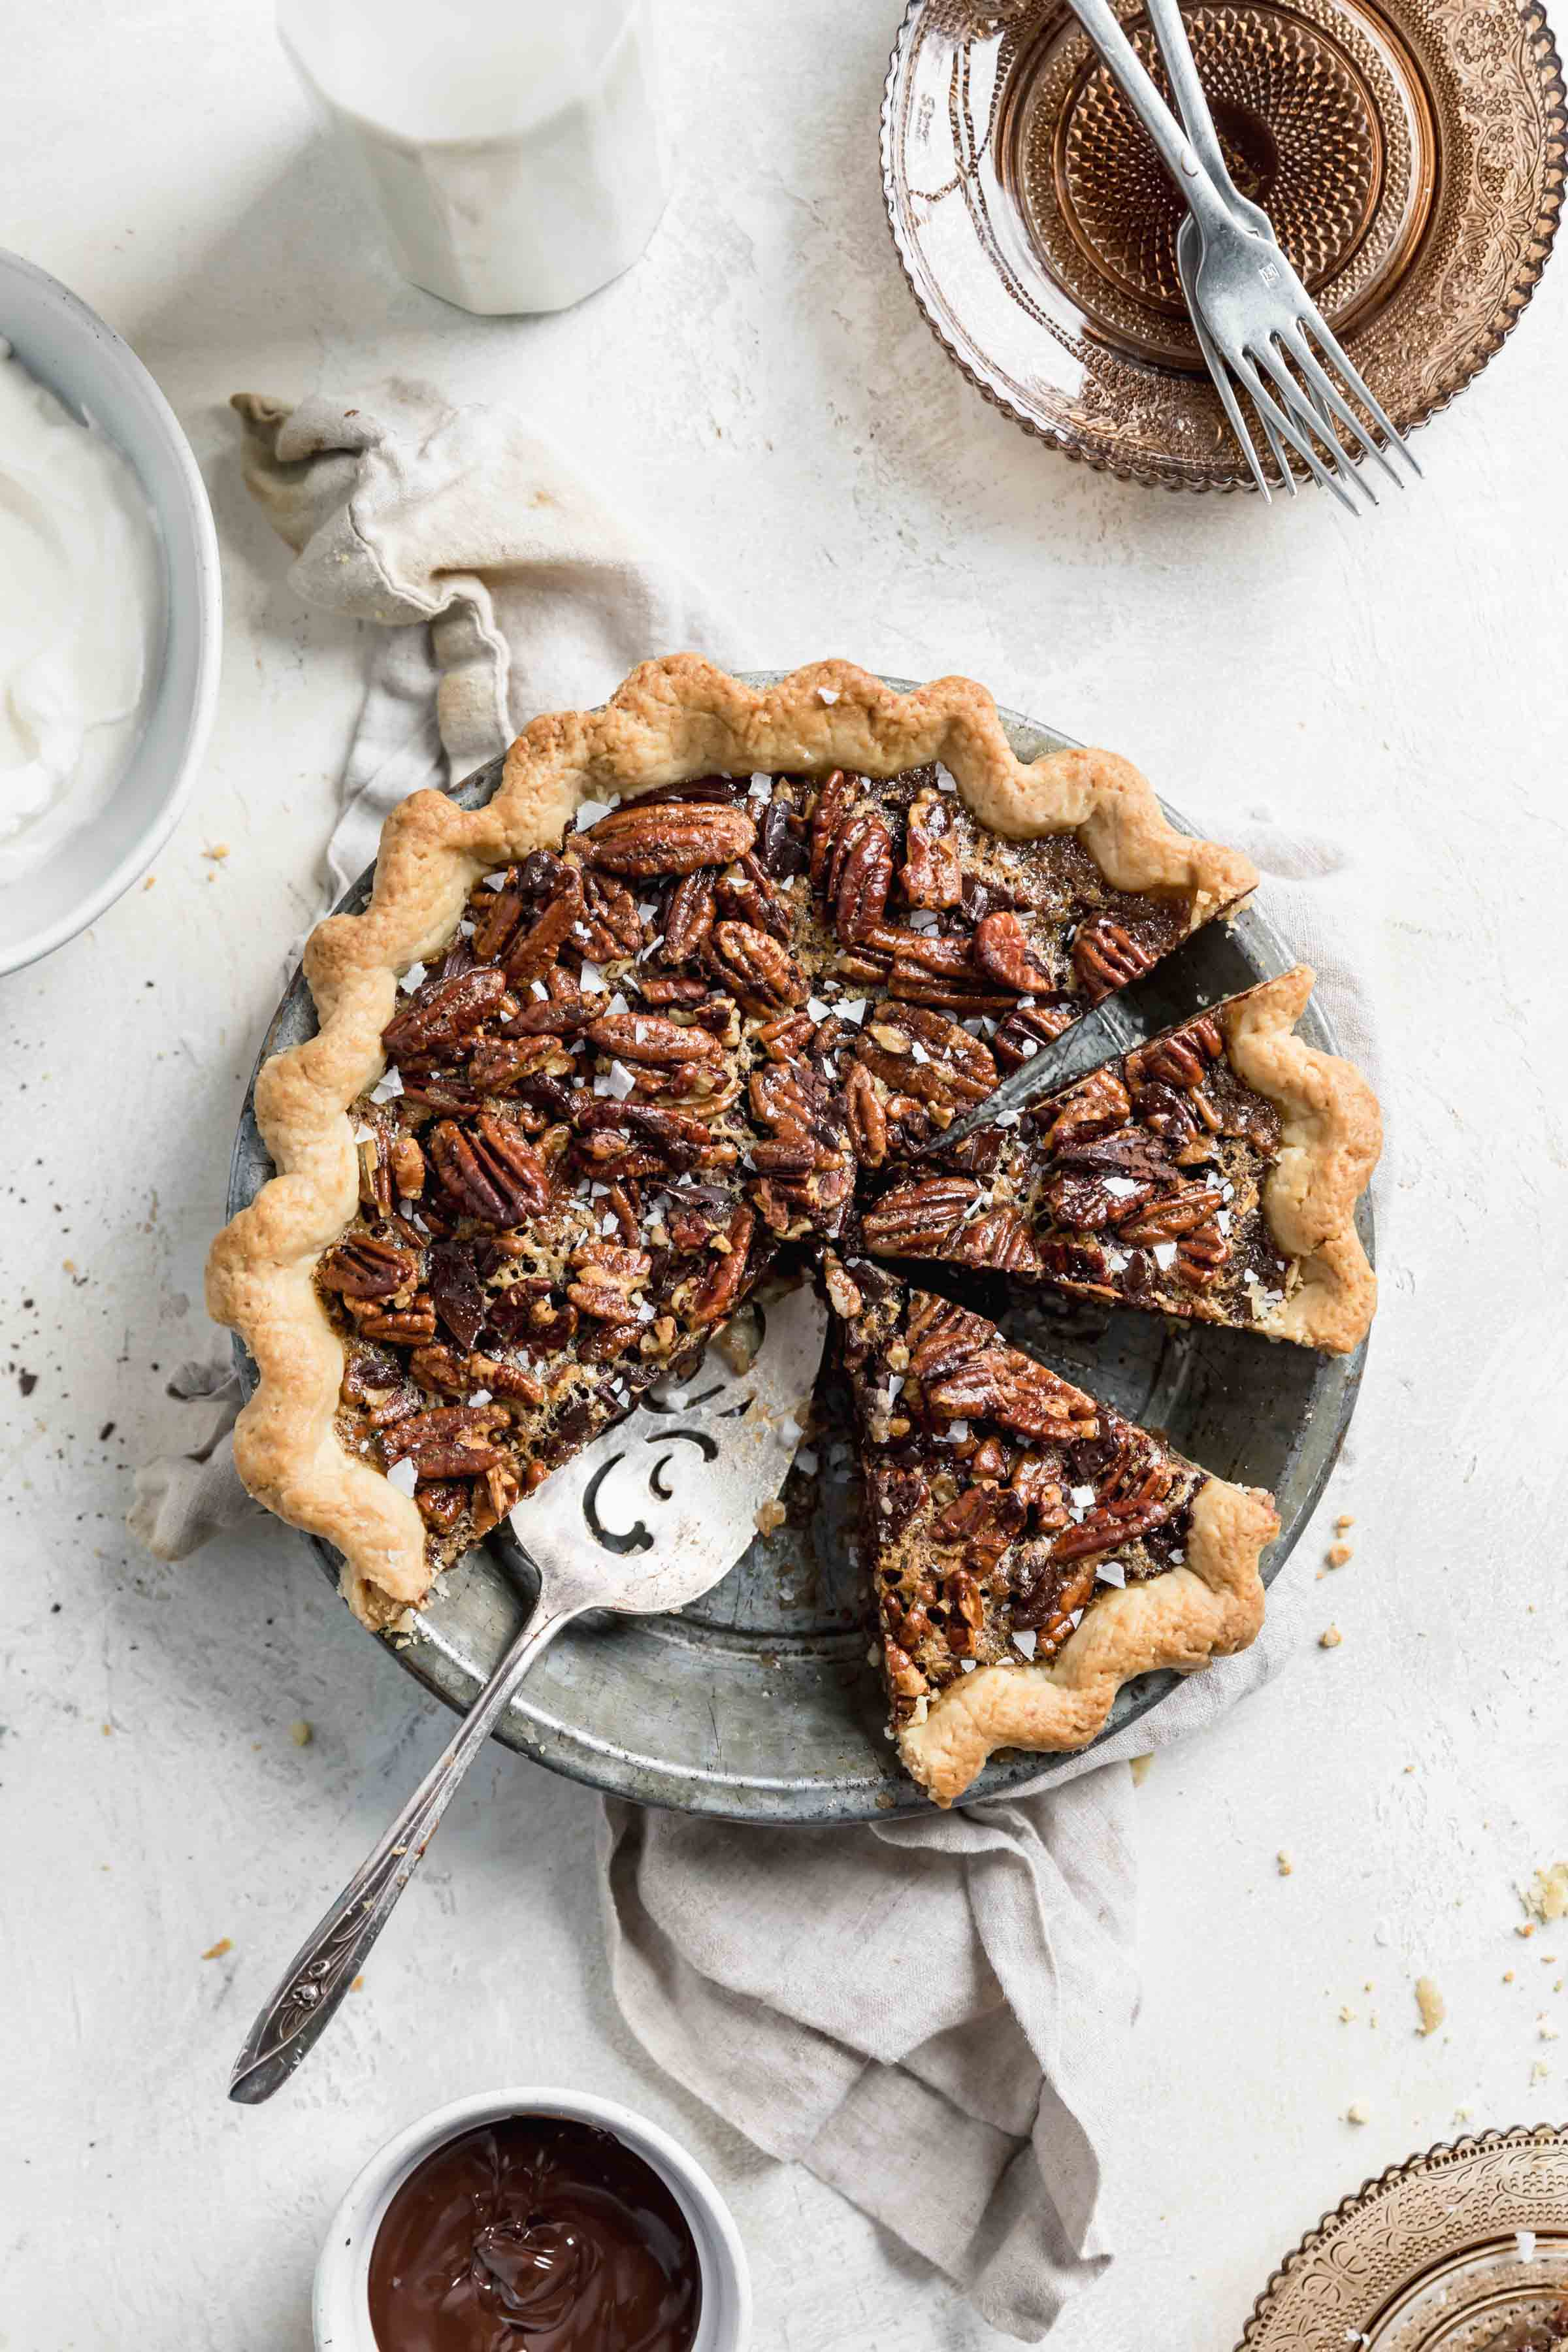 Take your pie game to the next level this Thanksgiving with this Bourbon Chocolate Pecan Pie. Loaded with chocolate chunks and a splash of bourbon, this pecan pie is the perfect ending to your Thanksgiving feast!